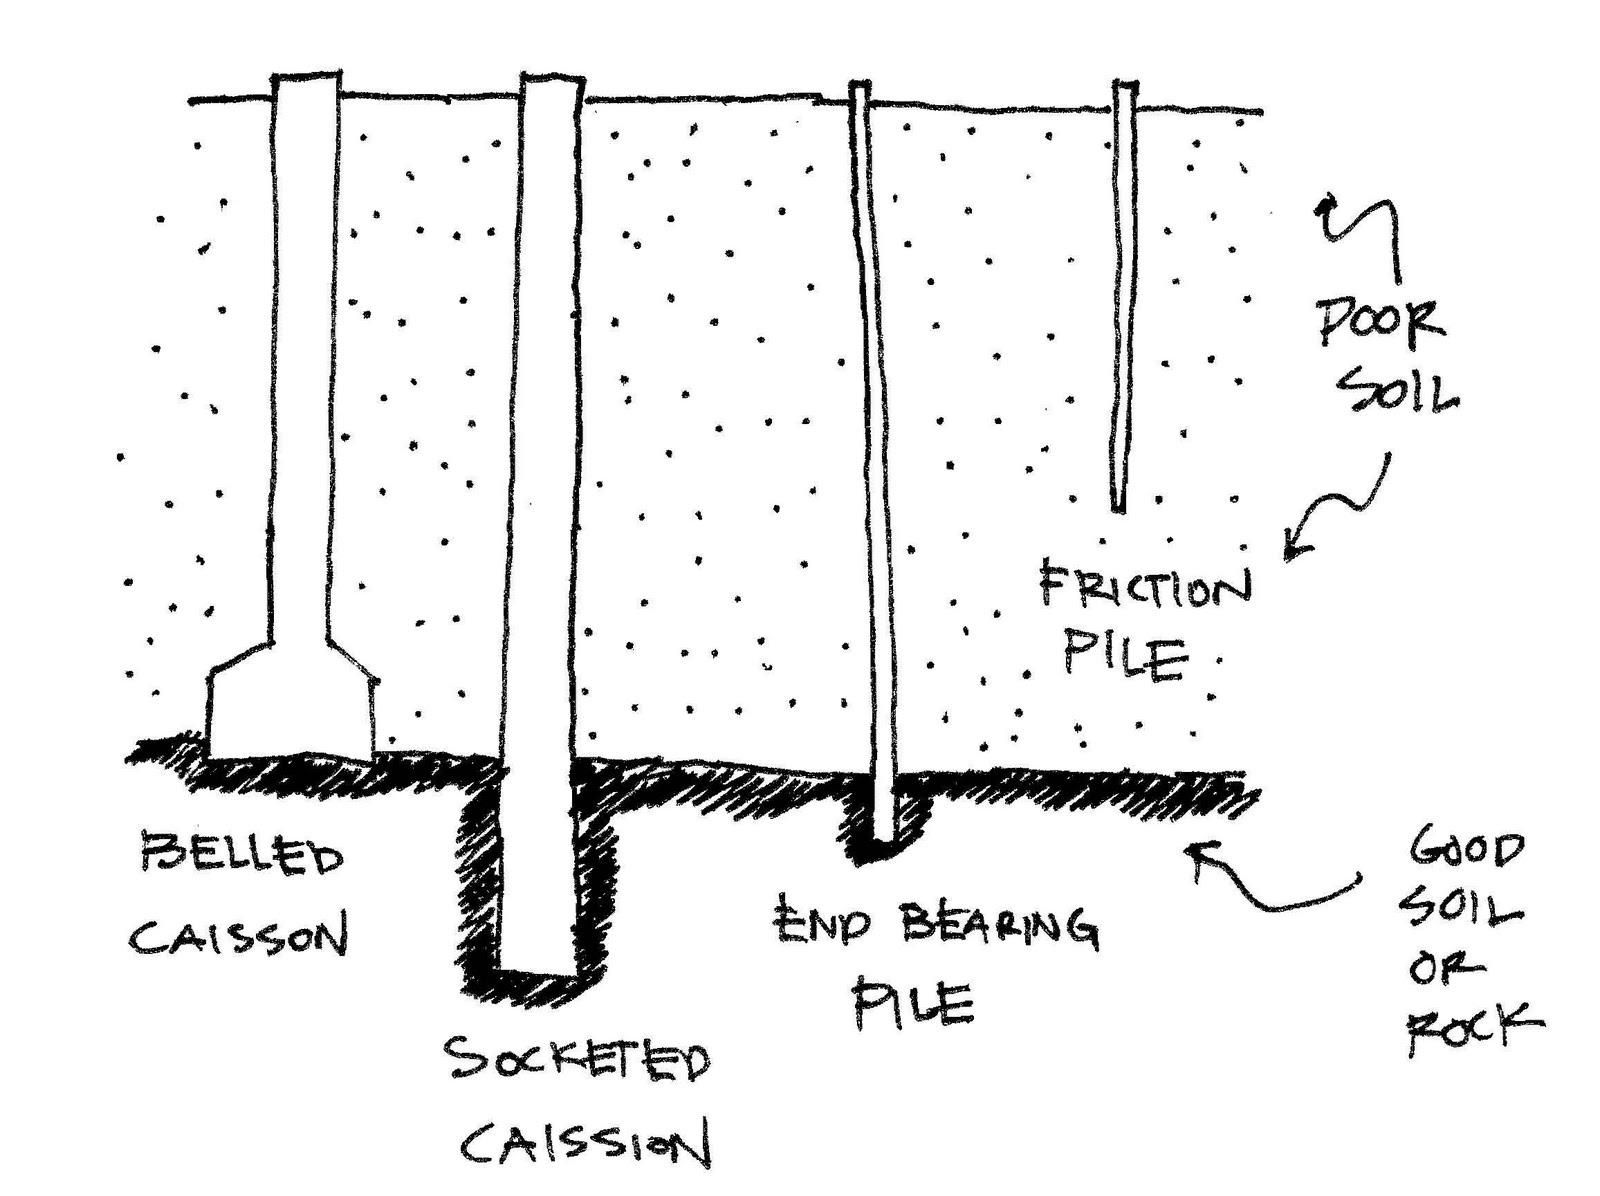 belling caisson Google Search Foundations Pinterest